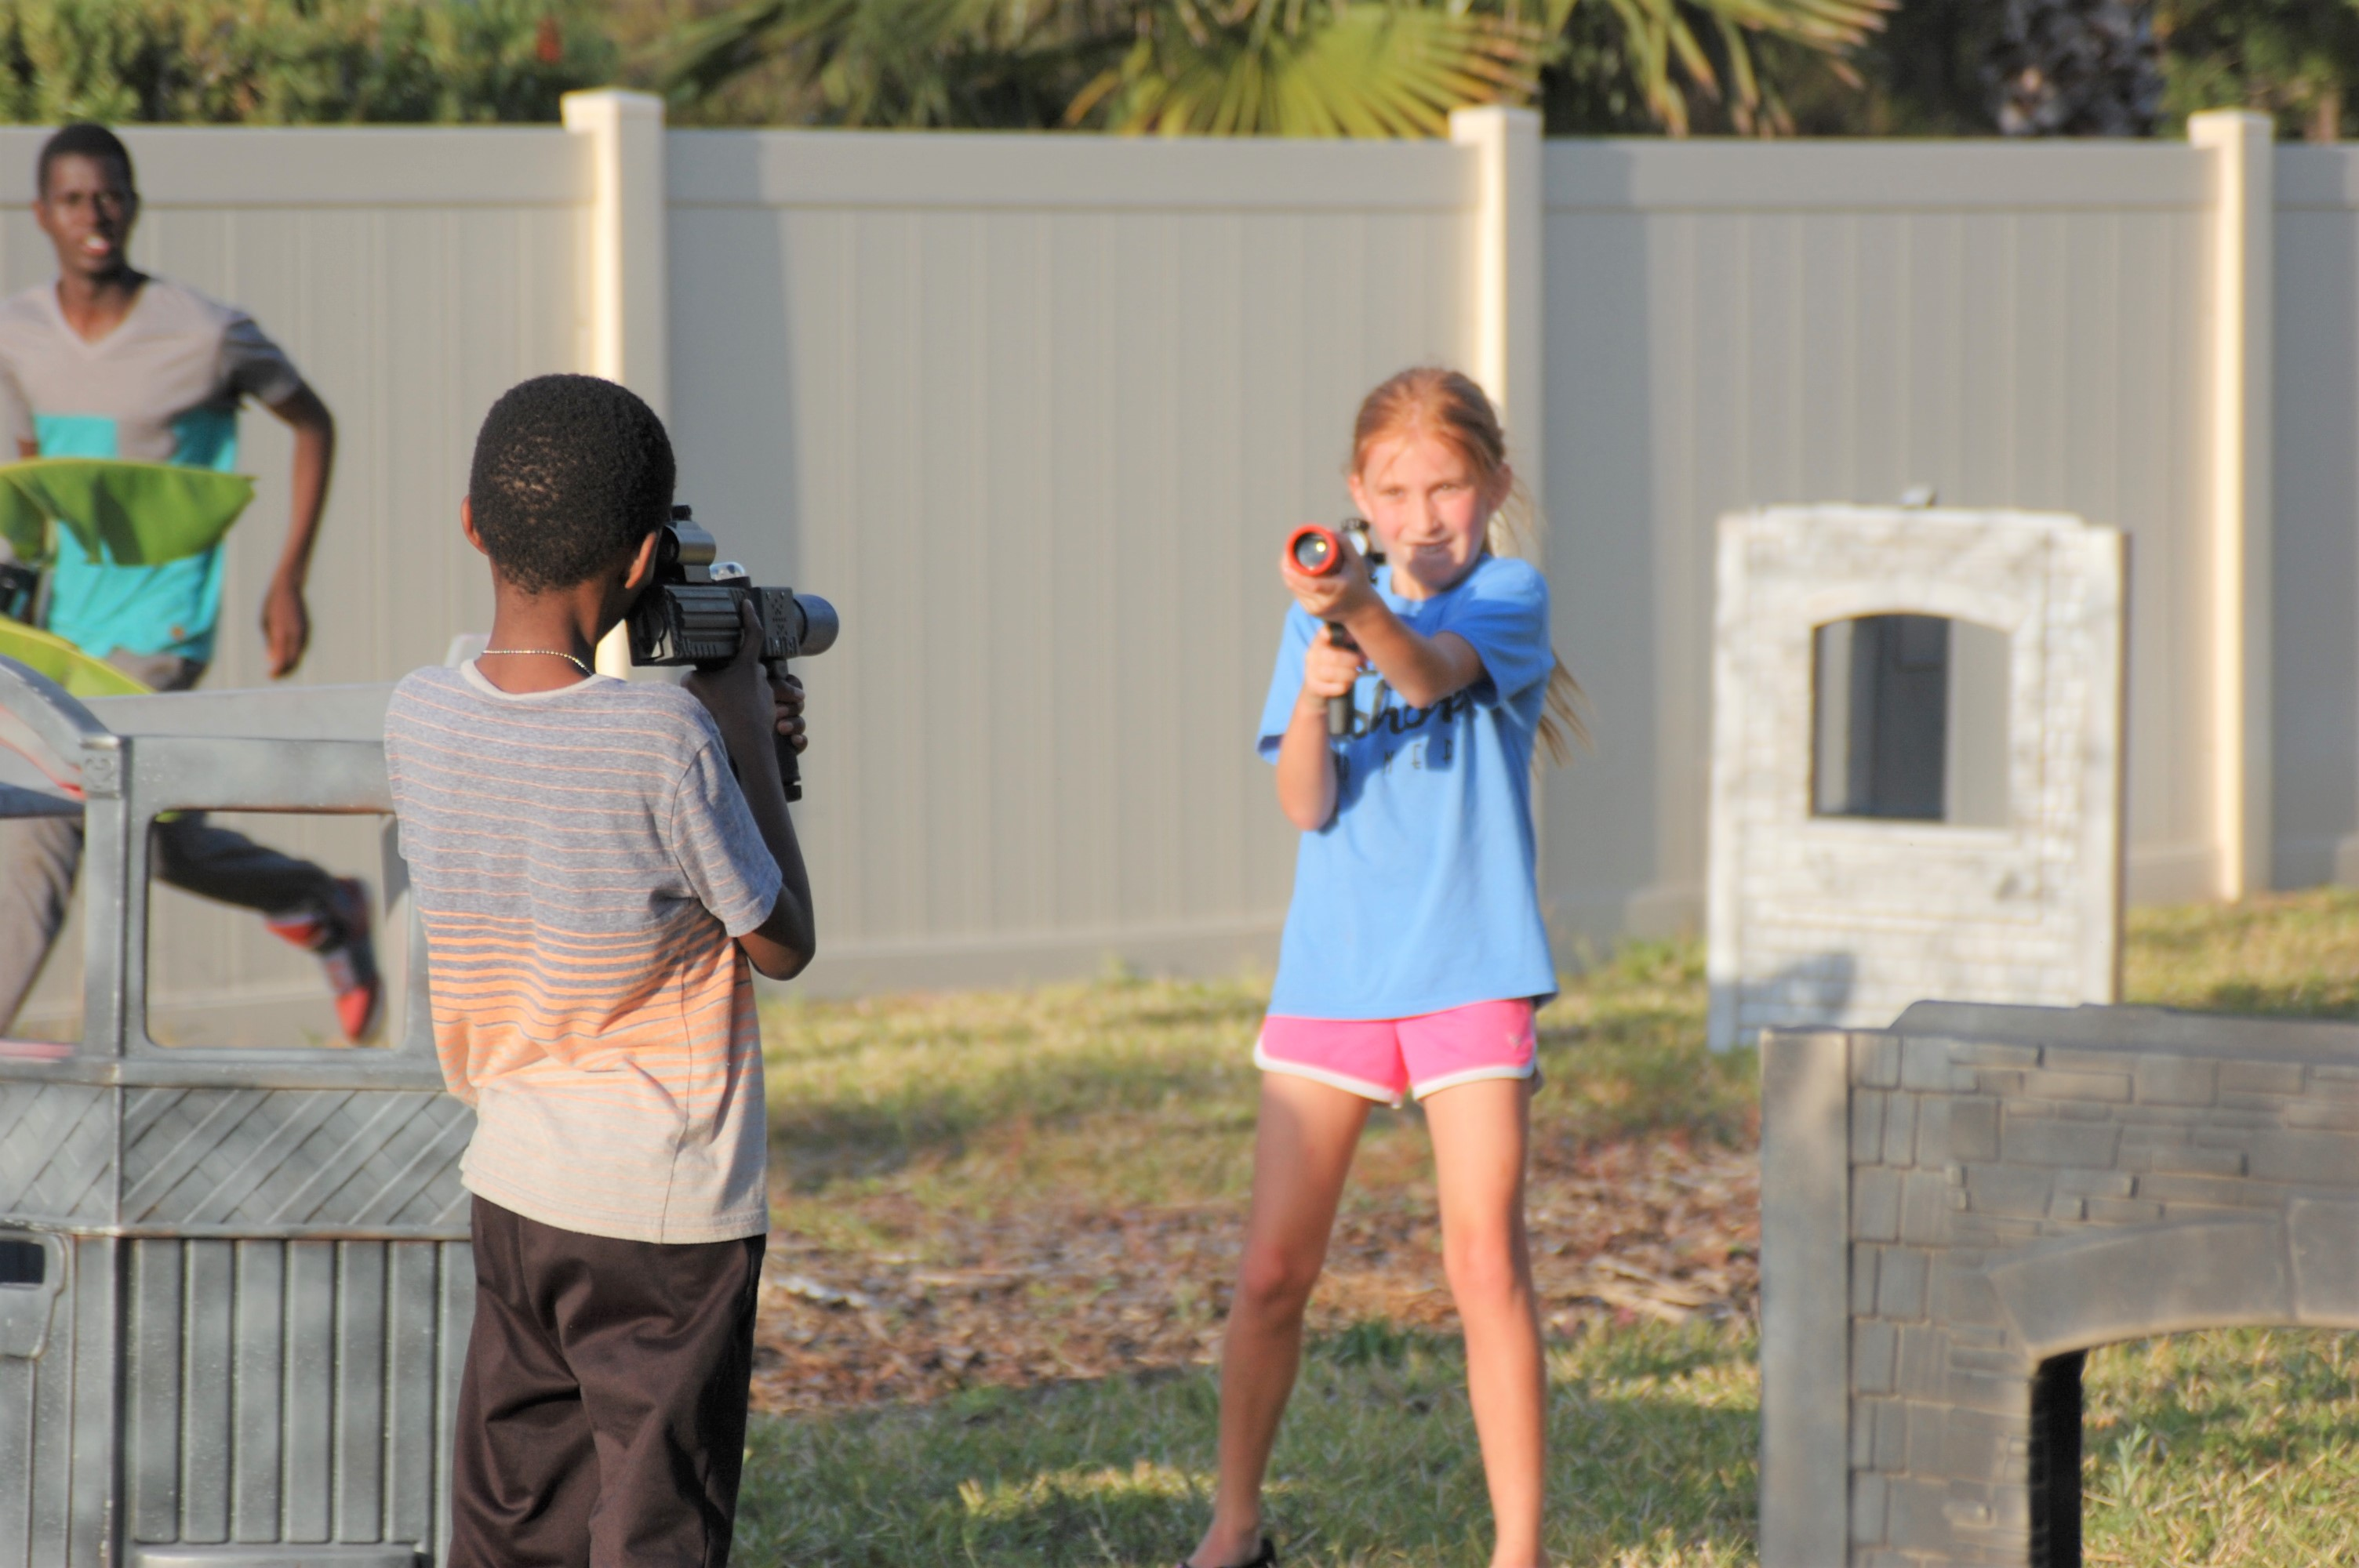 Mobile Laser Tag Events in Tampa,FL (3)